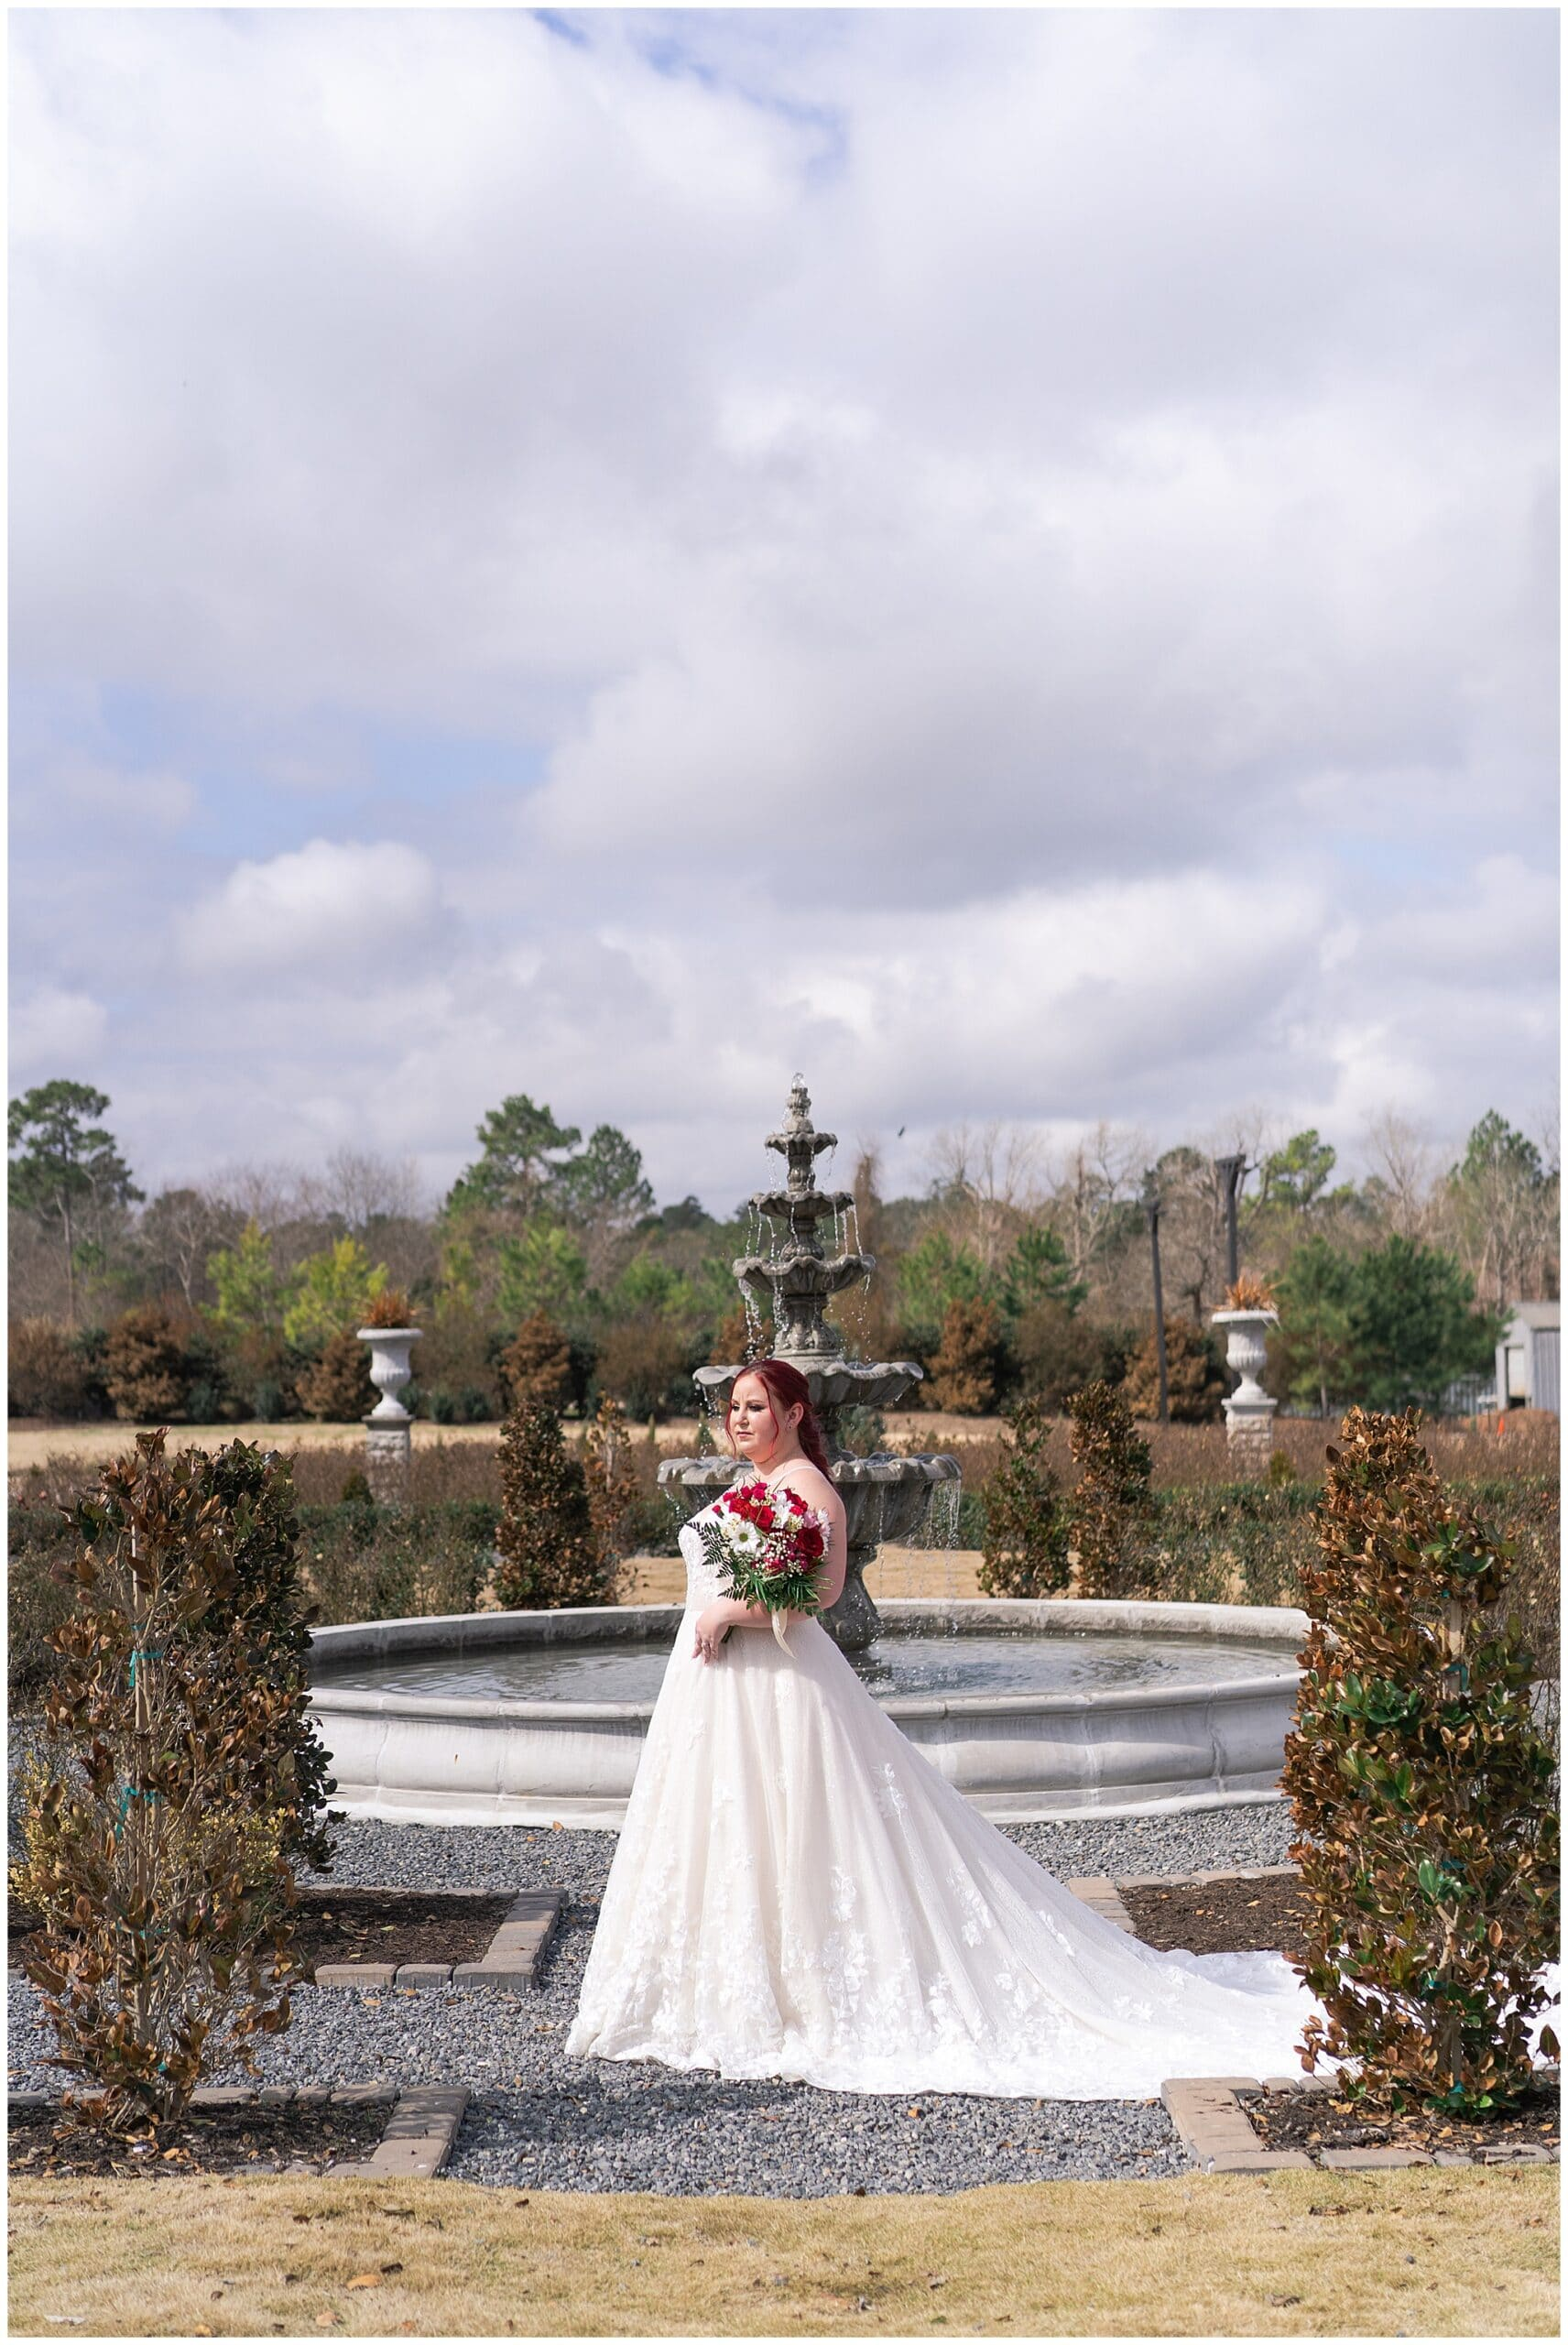 Iron Manor bridal session where the bride poses in the gardens captured by Swish and Click Photography in Houston Texas